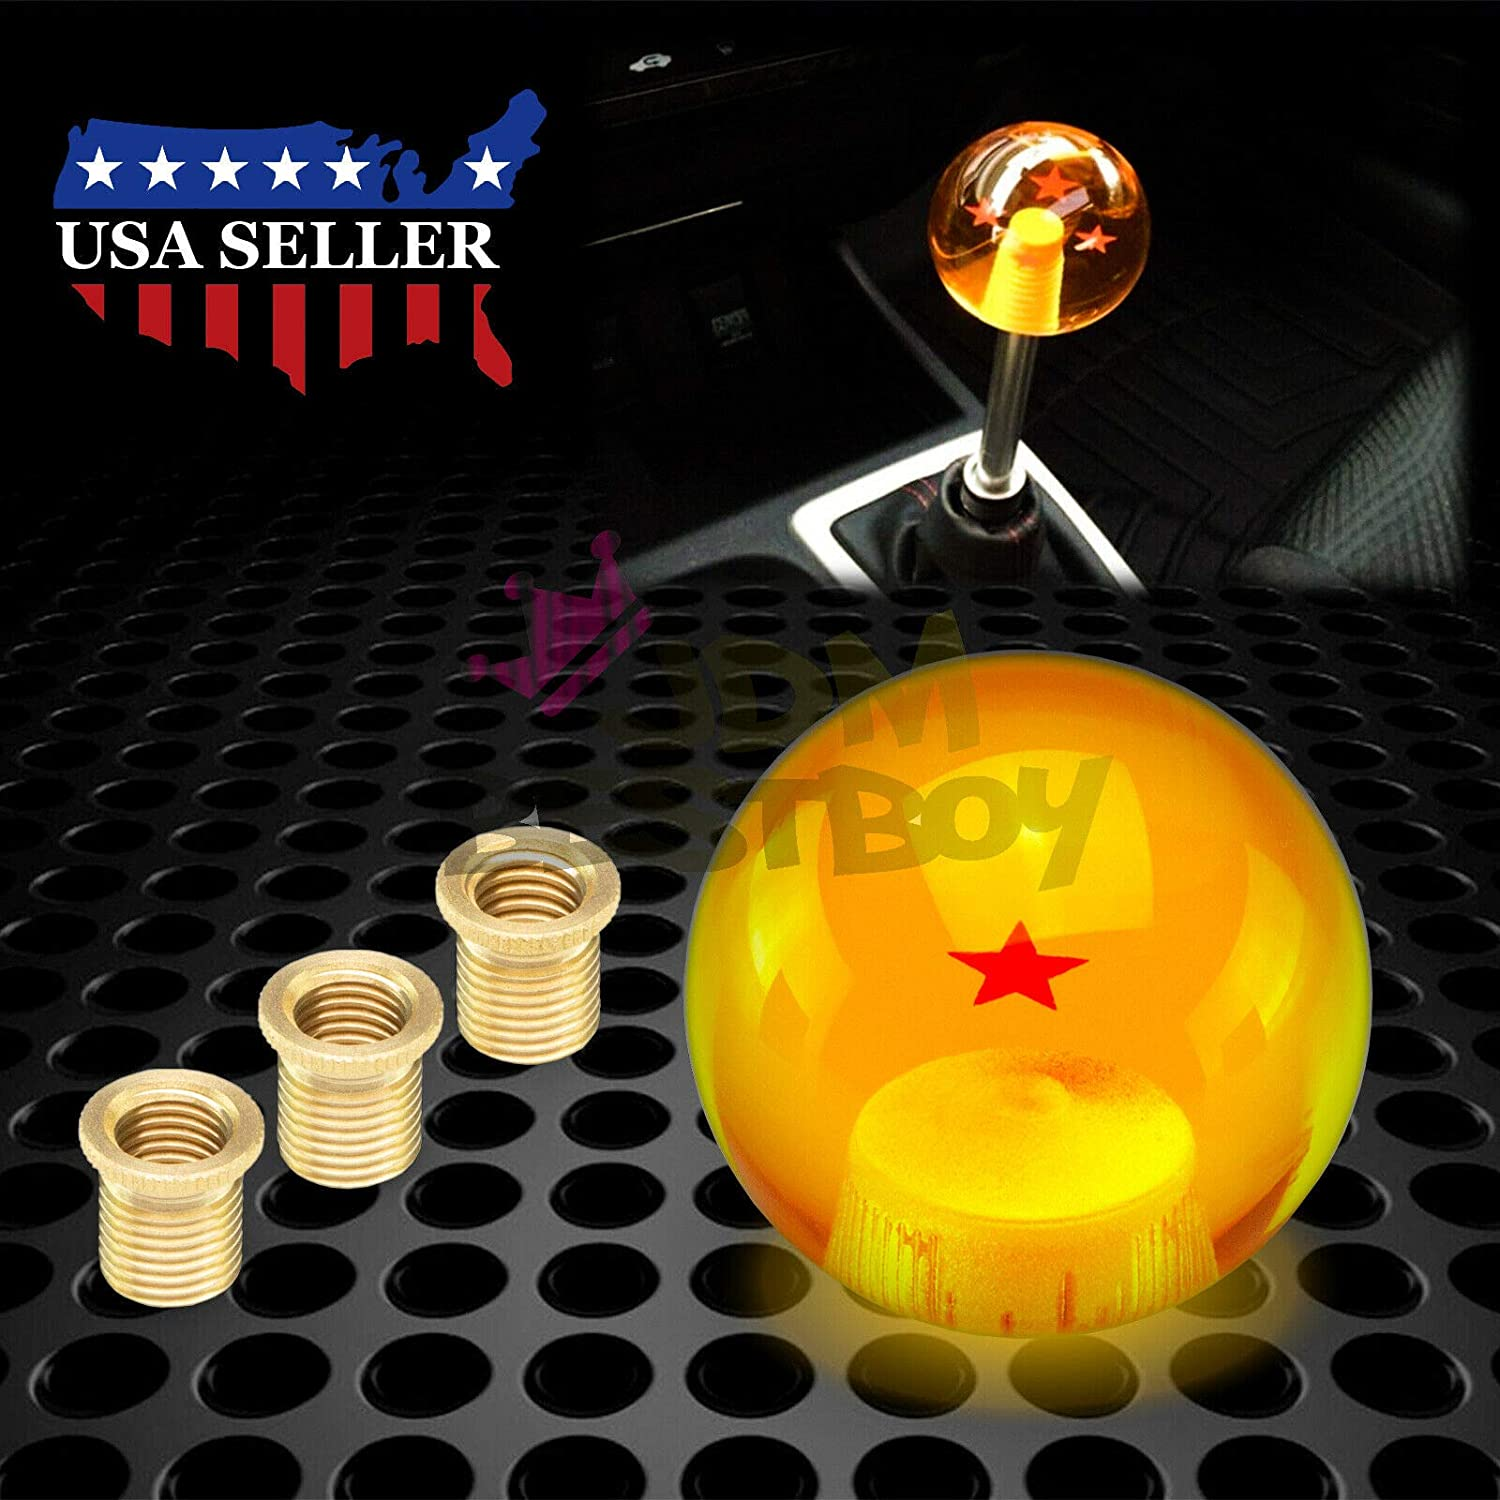 JDMBESTBOY Universal Blue Dragon Ball Z 6 Star 54mm Shift Knob with Adapters Will Fit Most Cars